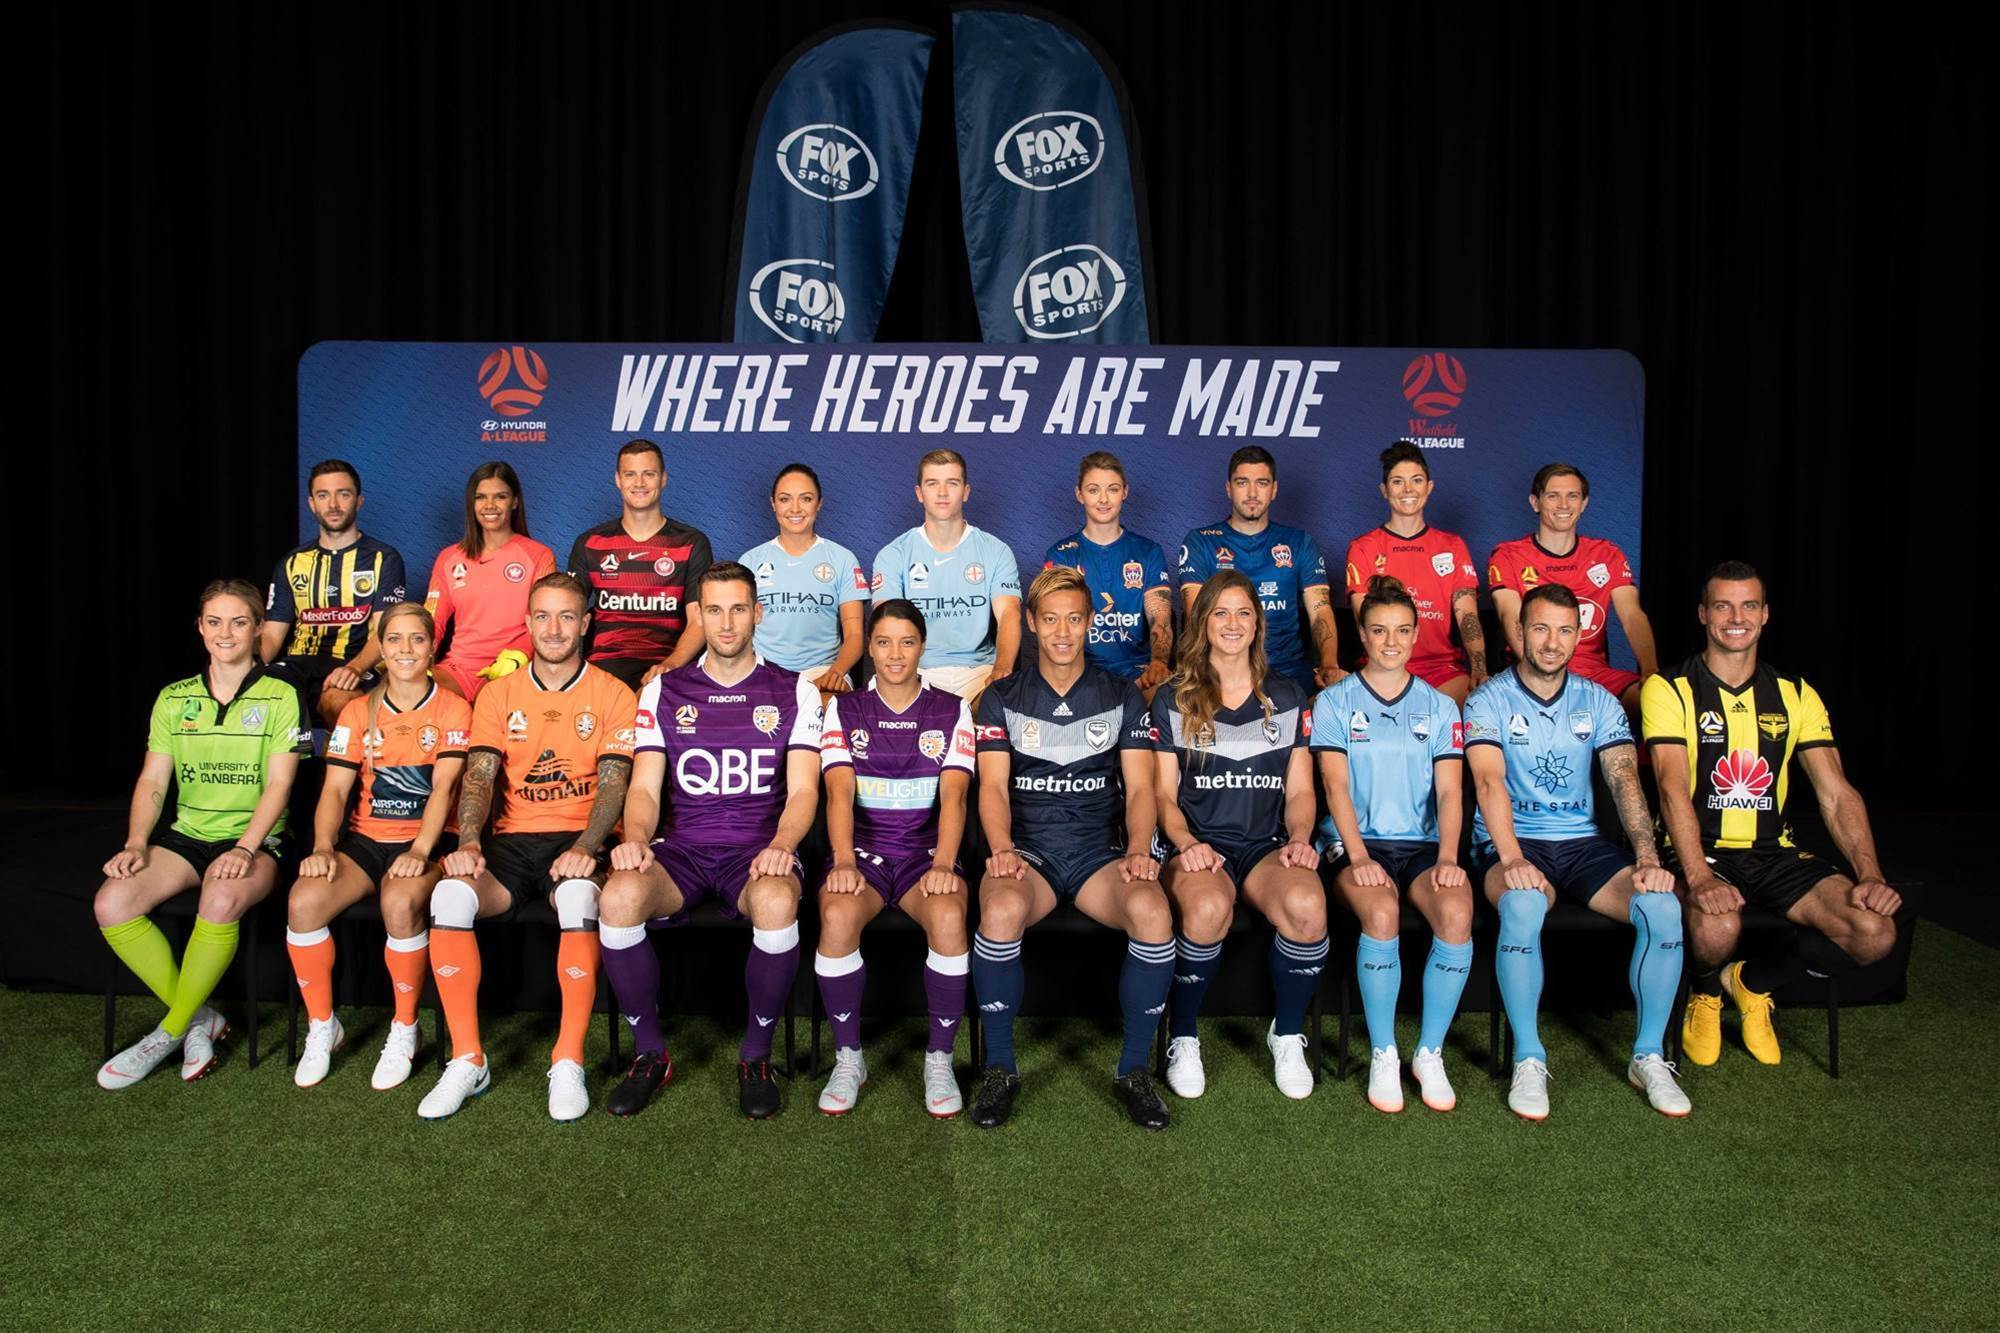 Show us your colours! A-League & W-league 2018/19 season launch